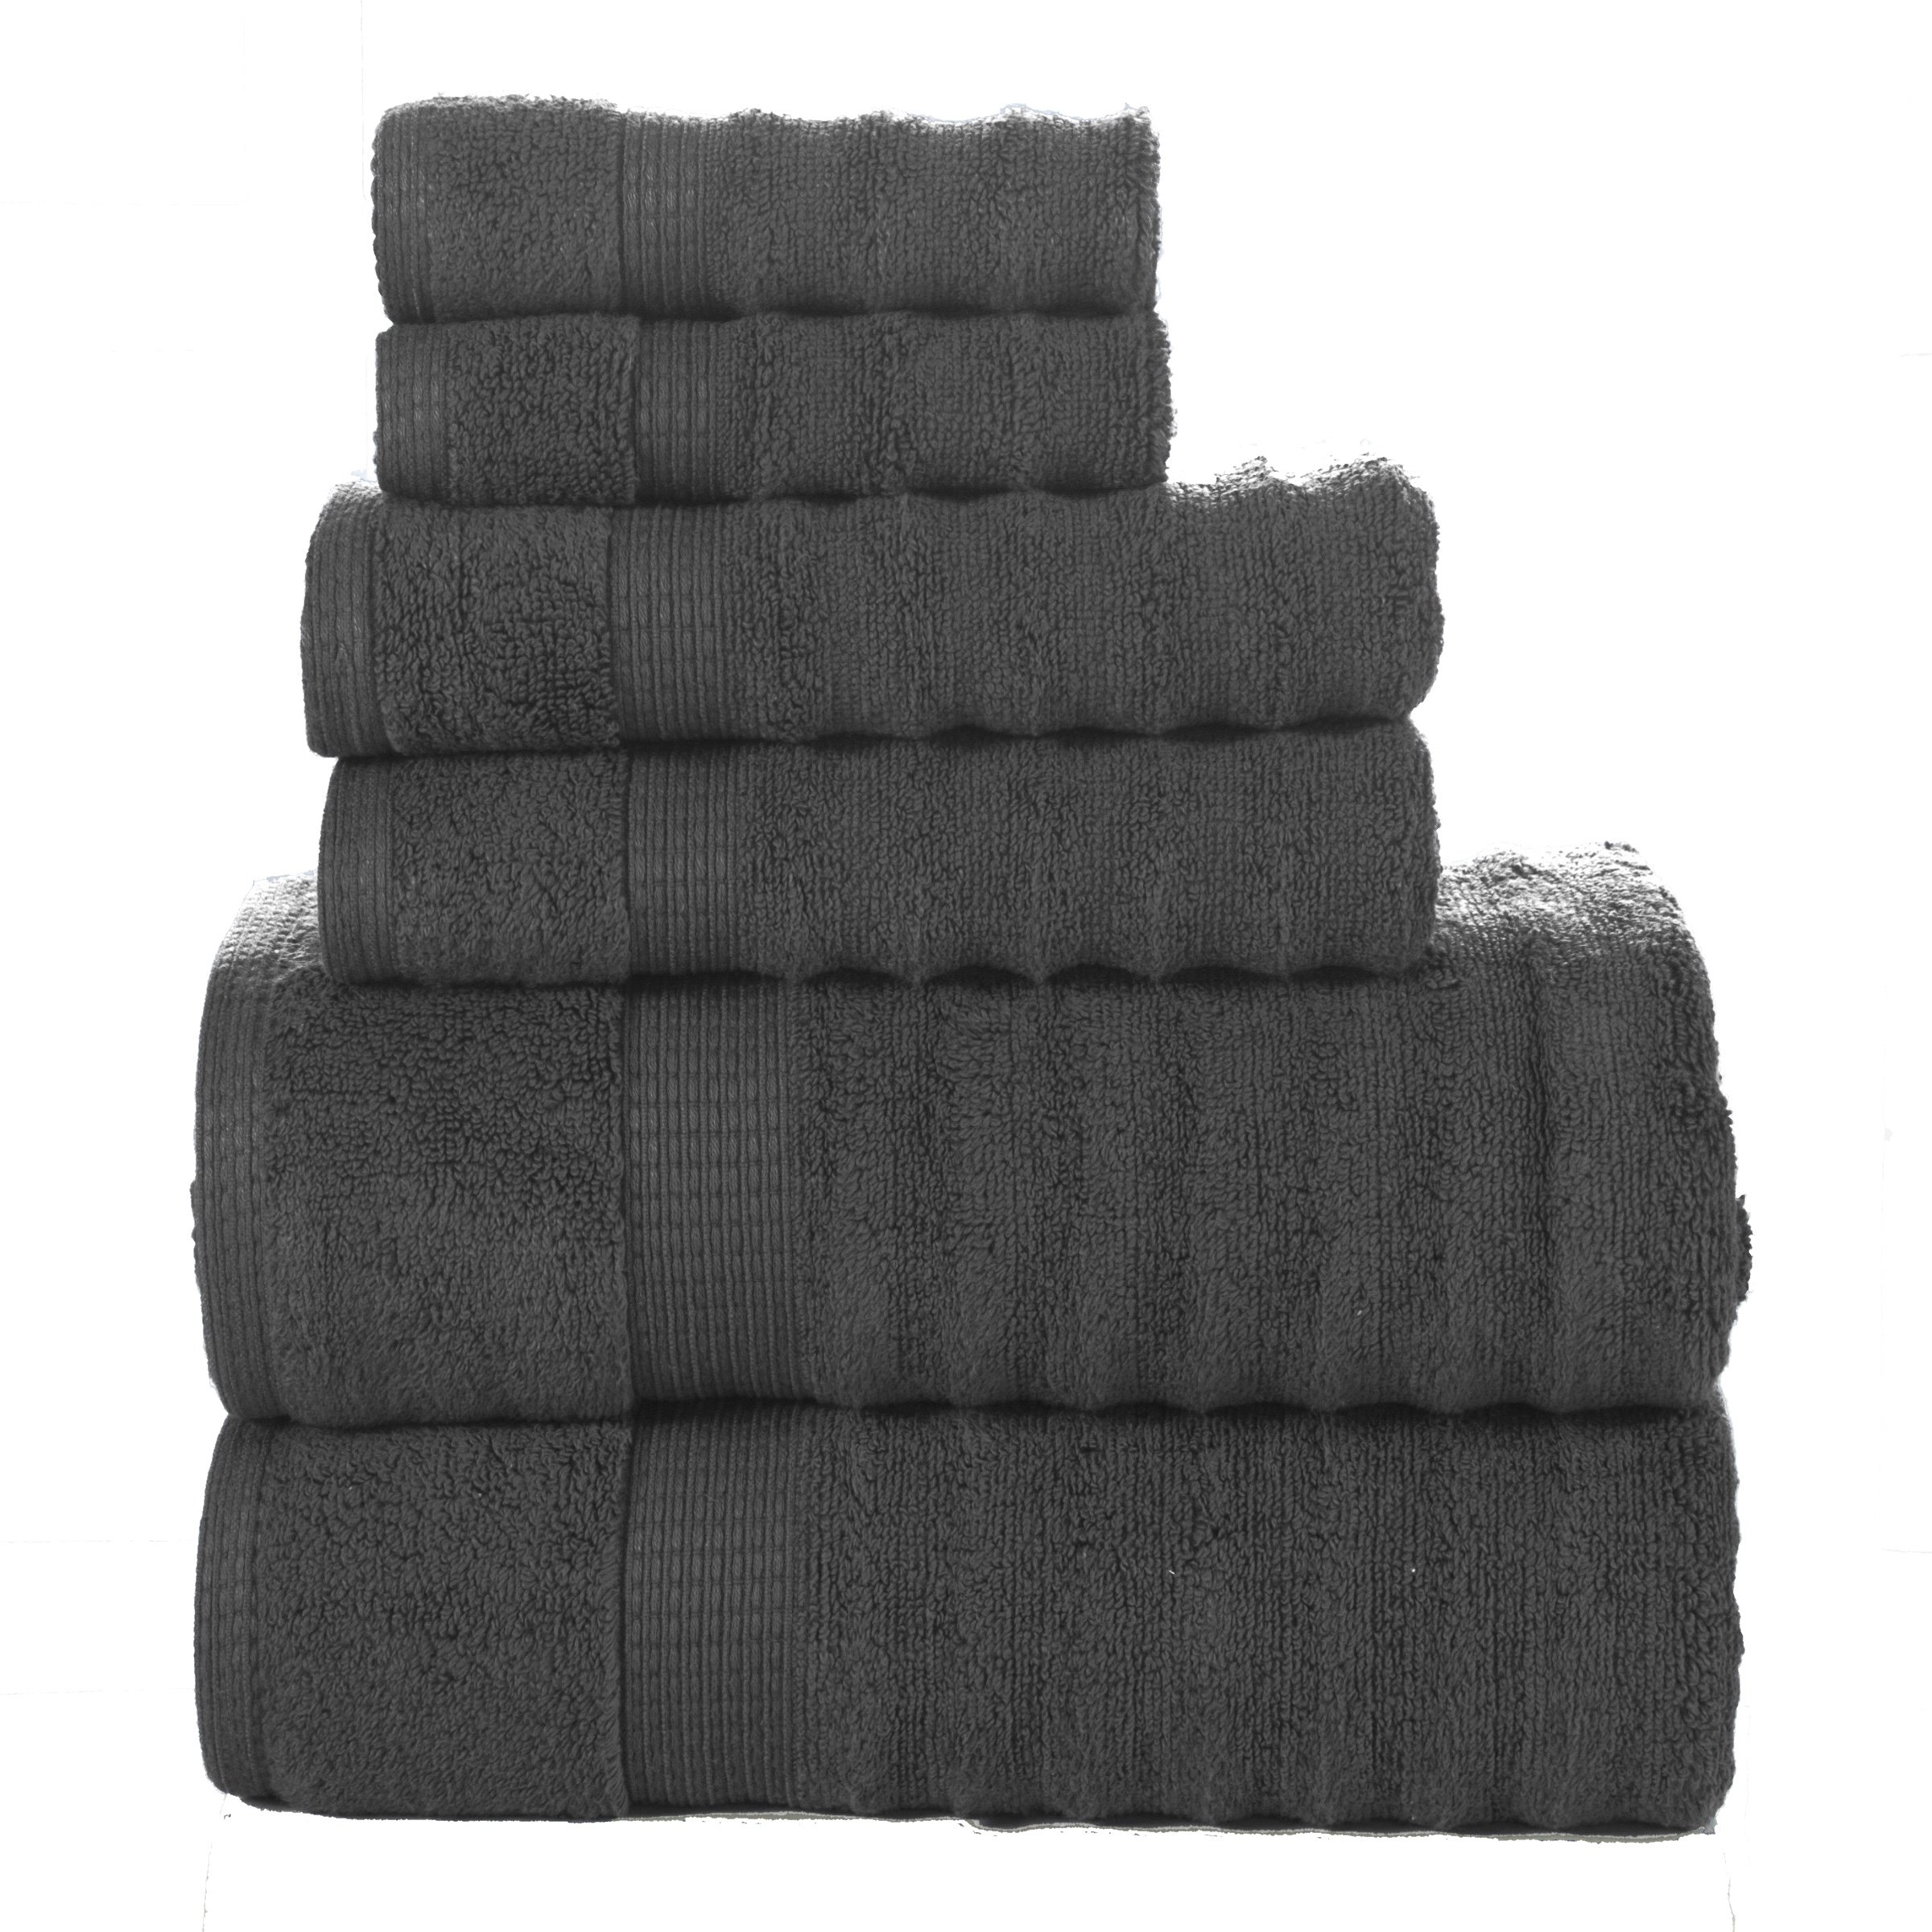 Affinity Home Collection 6 Piece Quick Dry Elegance Spa Zero Twist Cotton Ribbed Towel Set, Grey